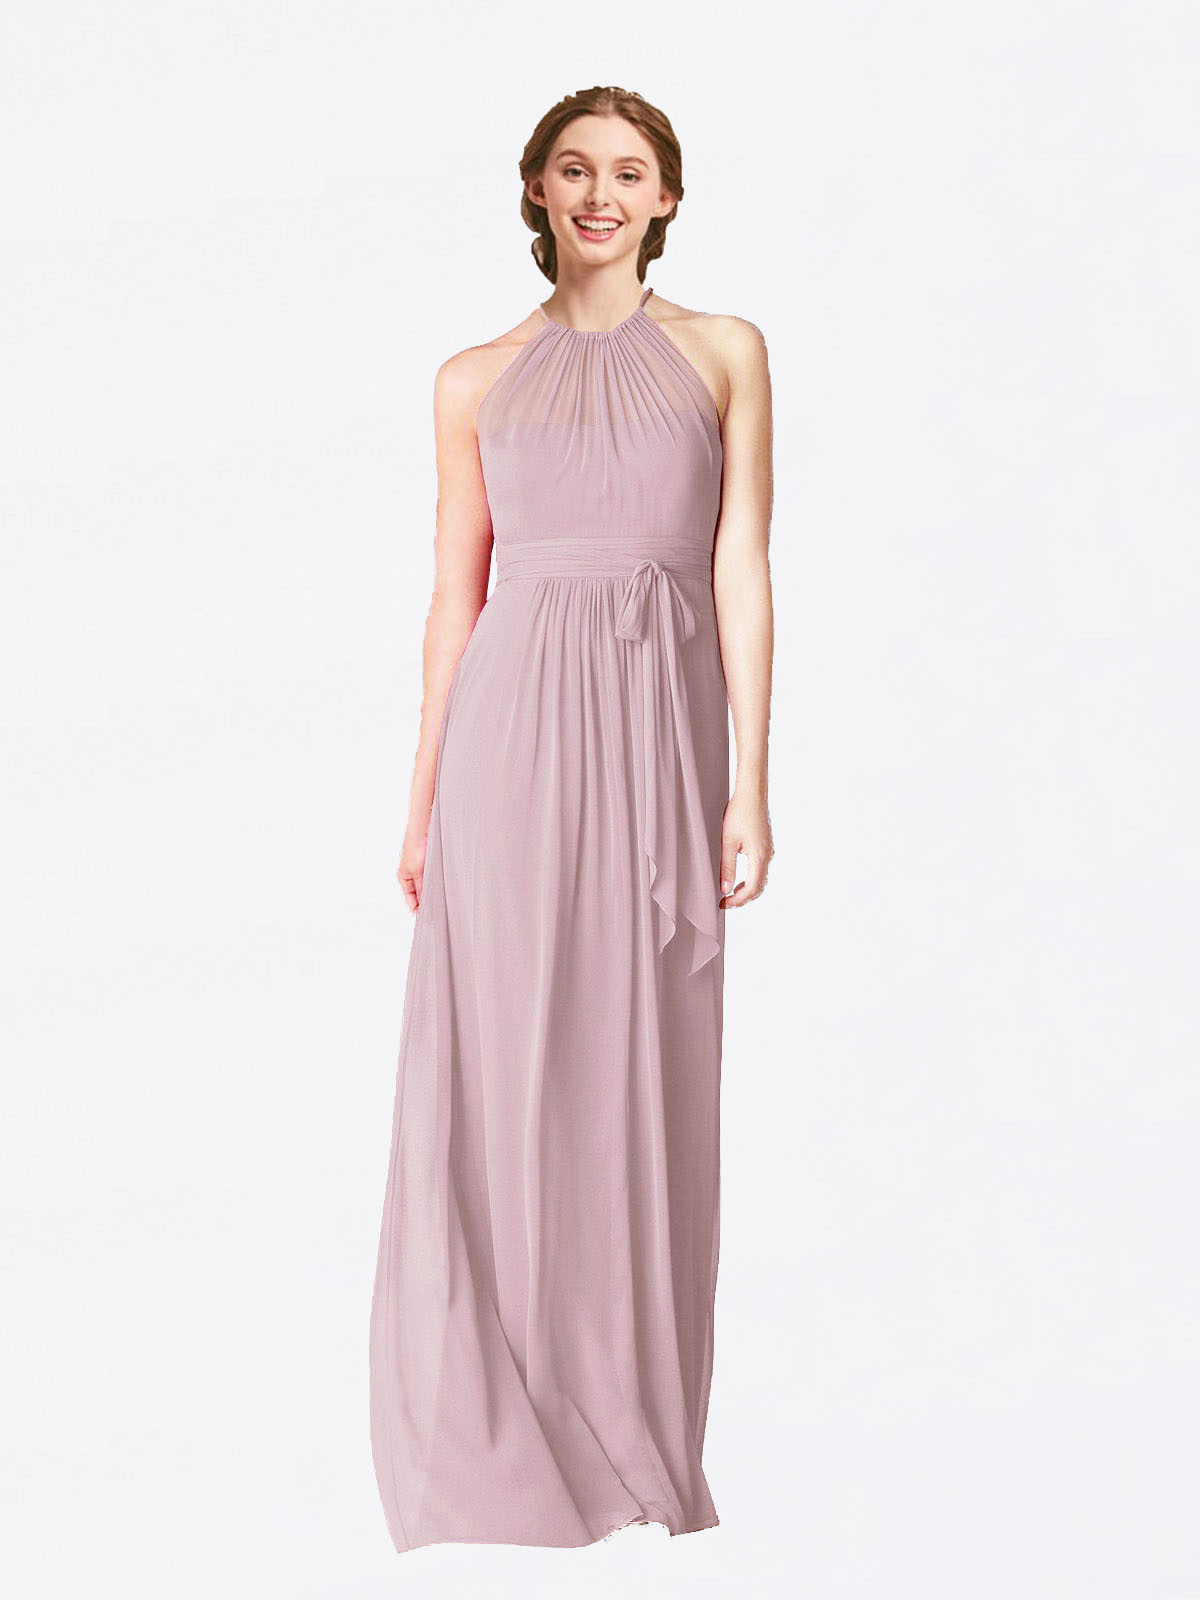 Long A-Line Halter Sleeveless Primrose Chiffon Bridesmaid Dress Laura